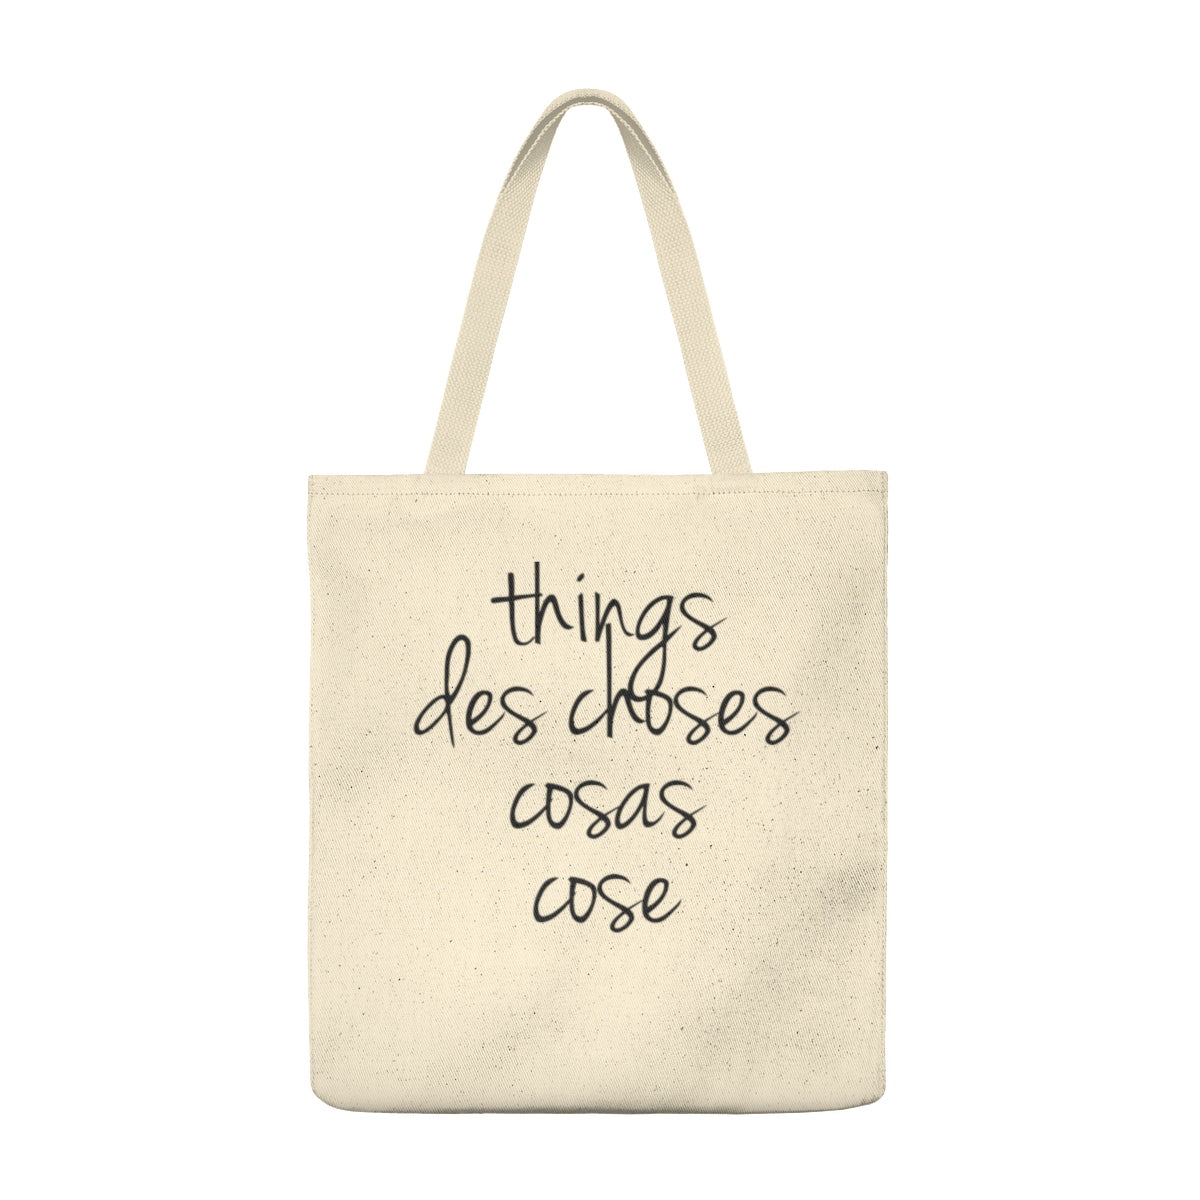 Things, De Choses, Cosas, Cose Tote